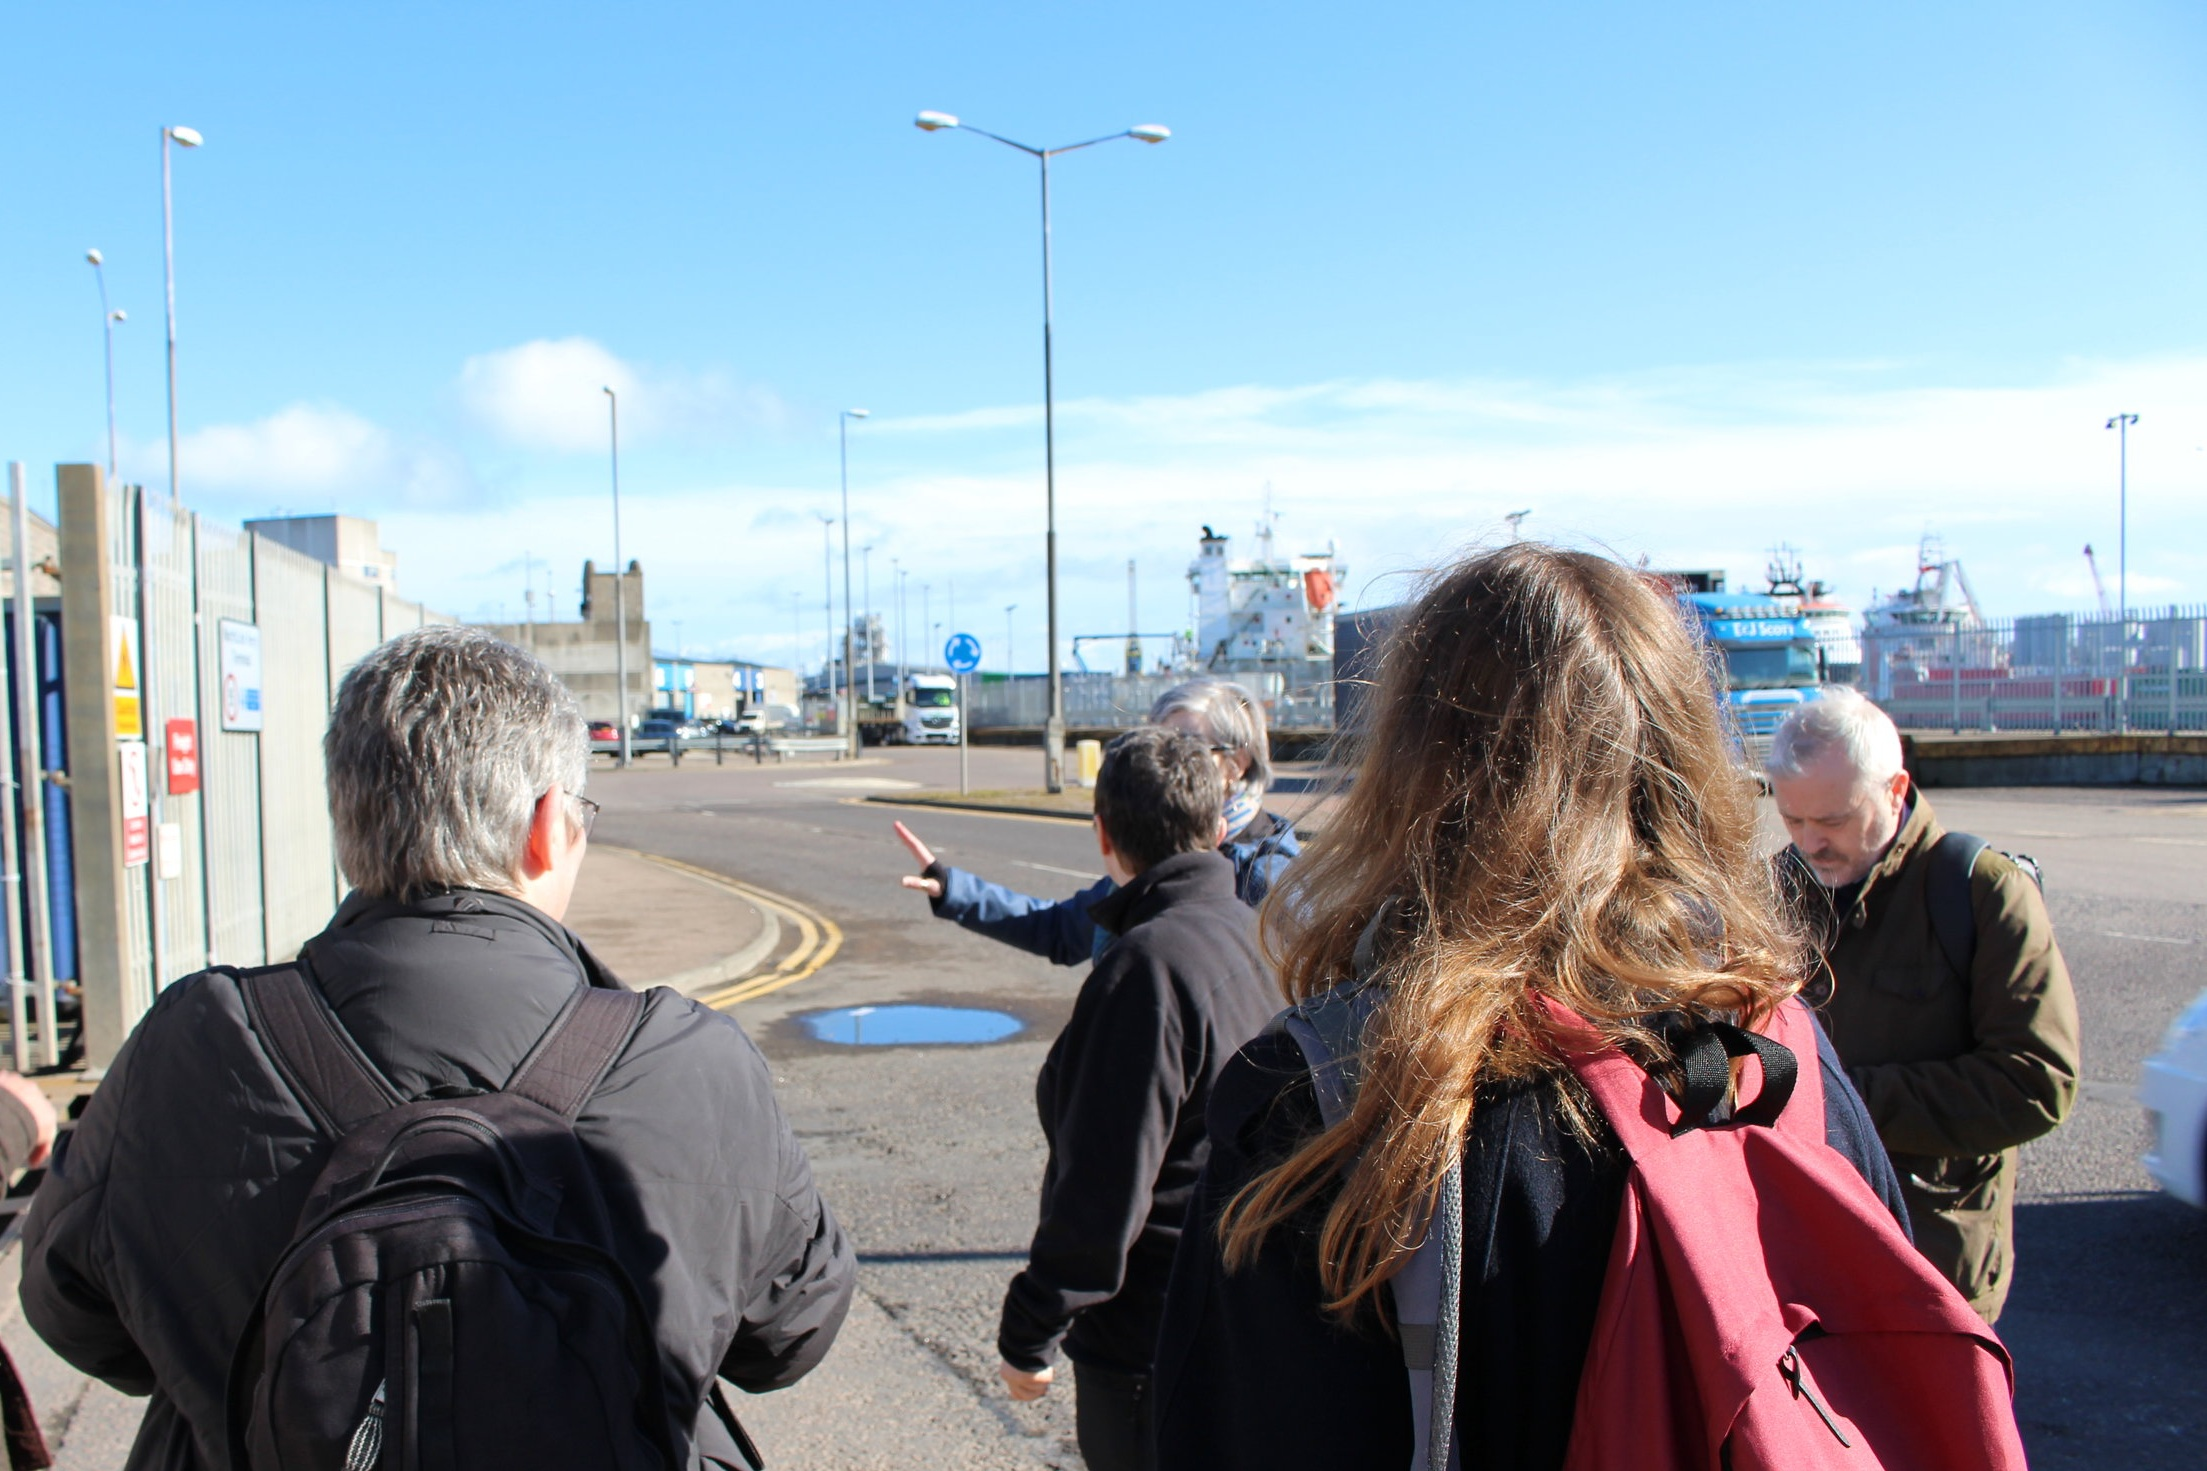 Description: The group considers a road crossing and surfaces on the way to the harbour.